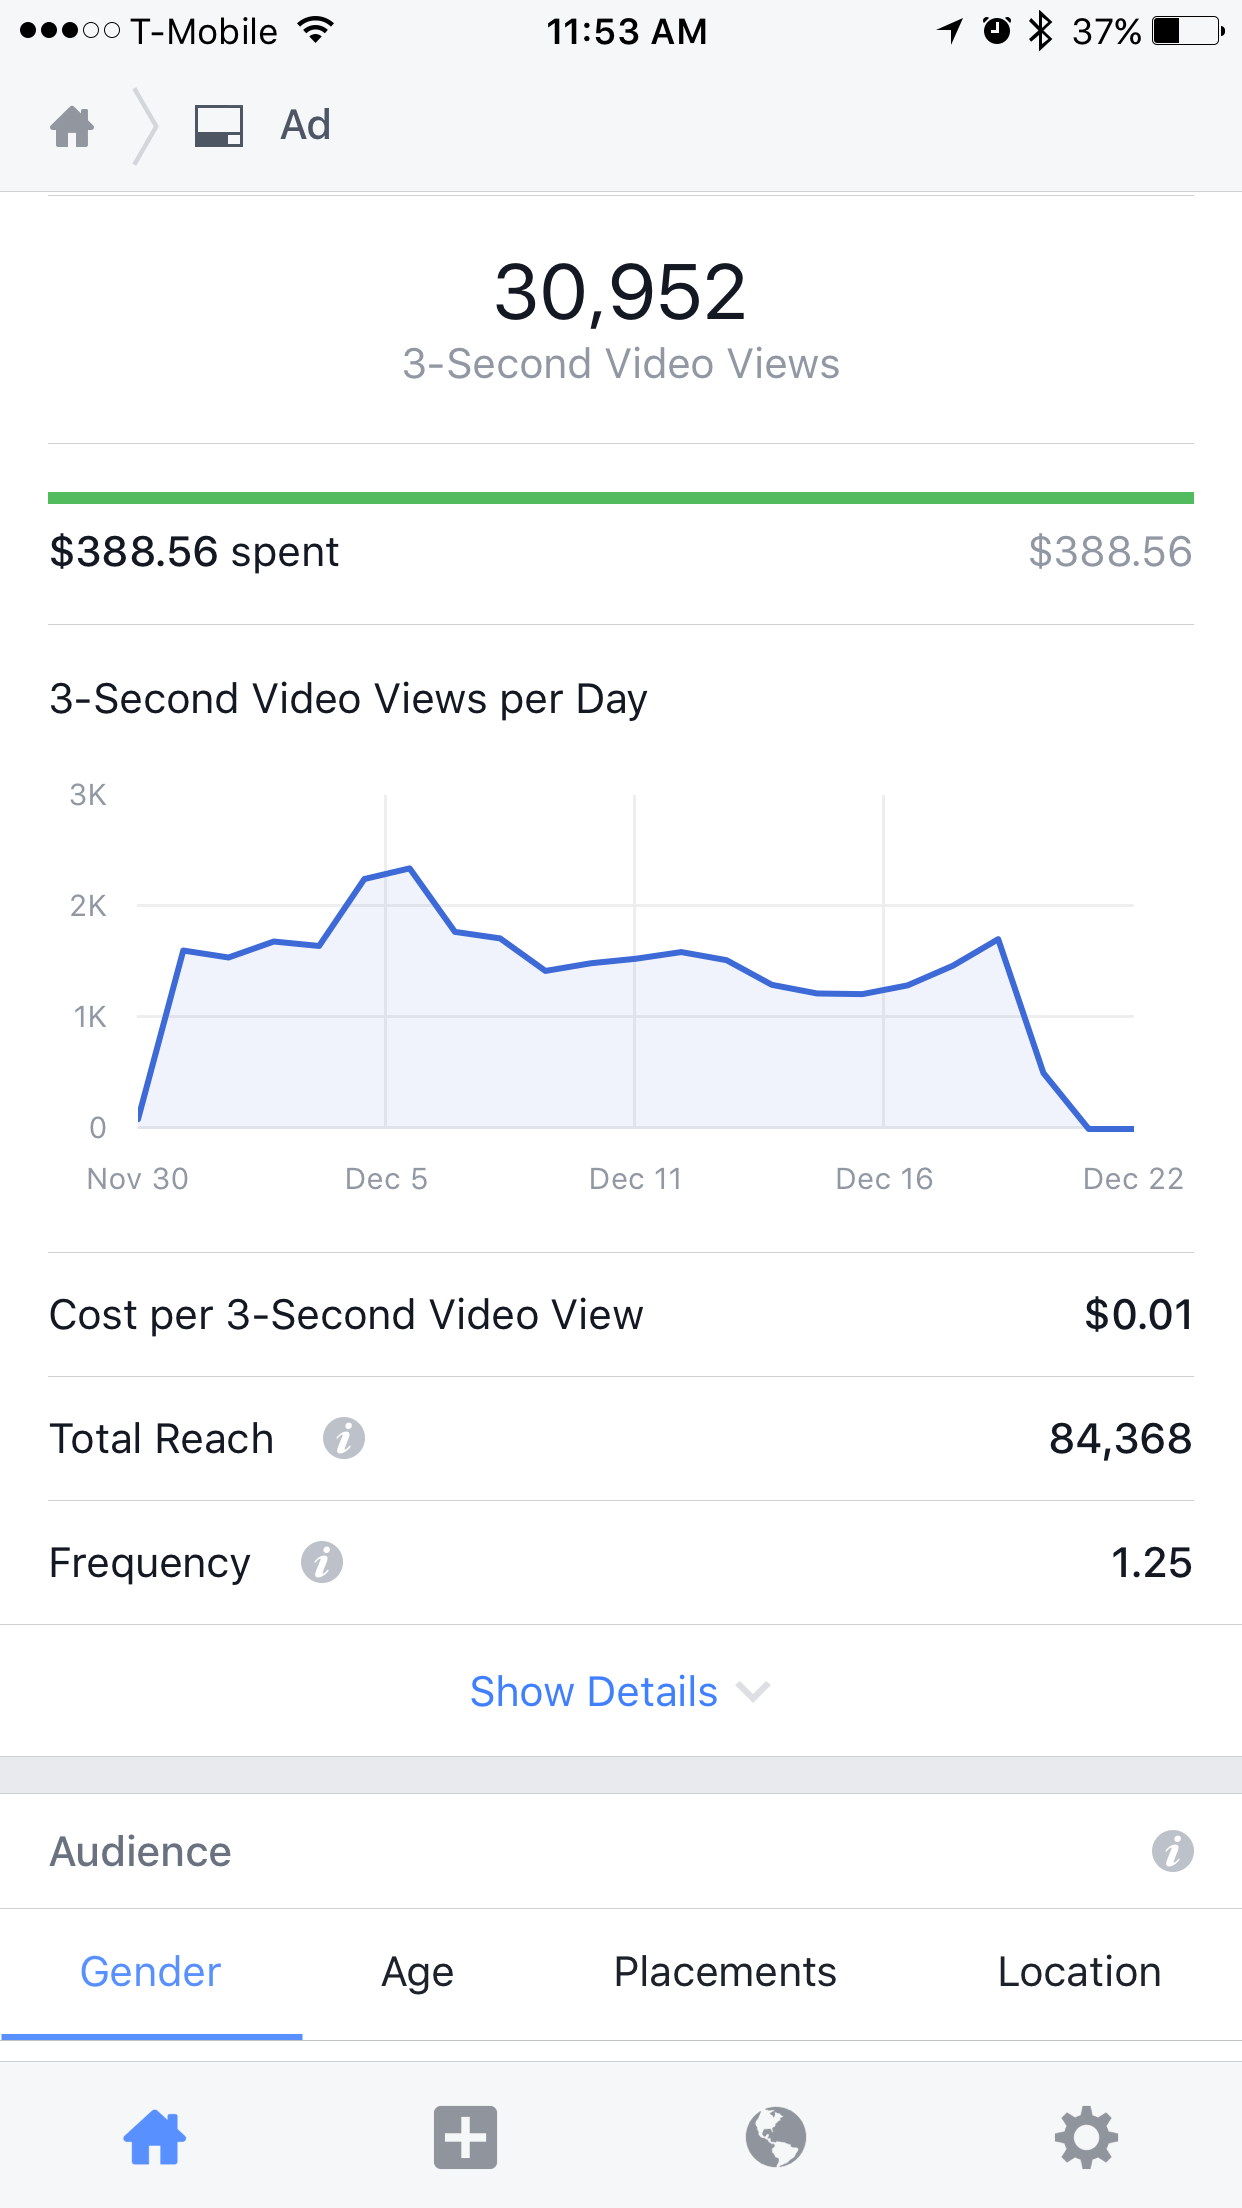 30,000+ Facebook 3-Sec Video Views